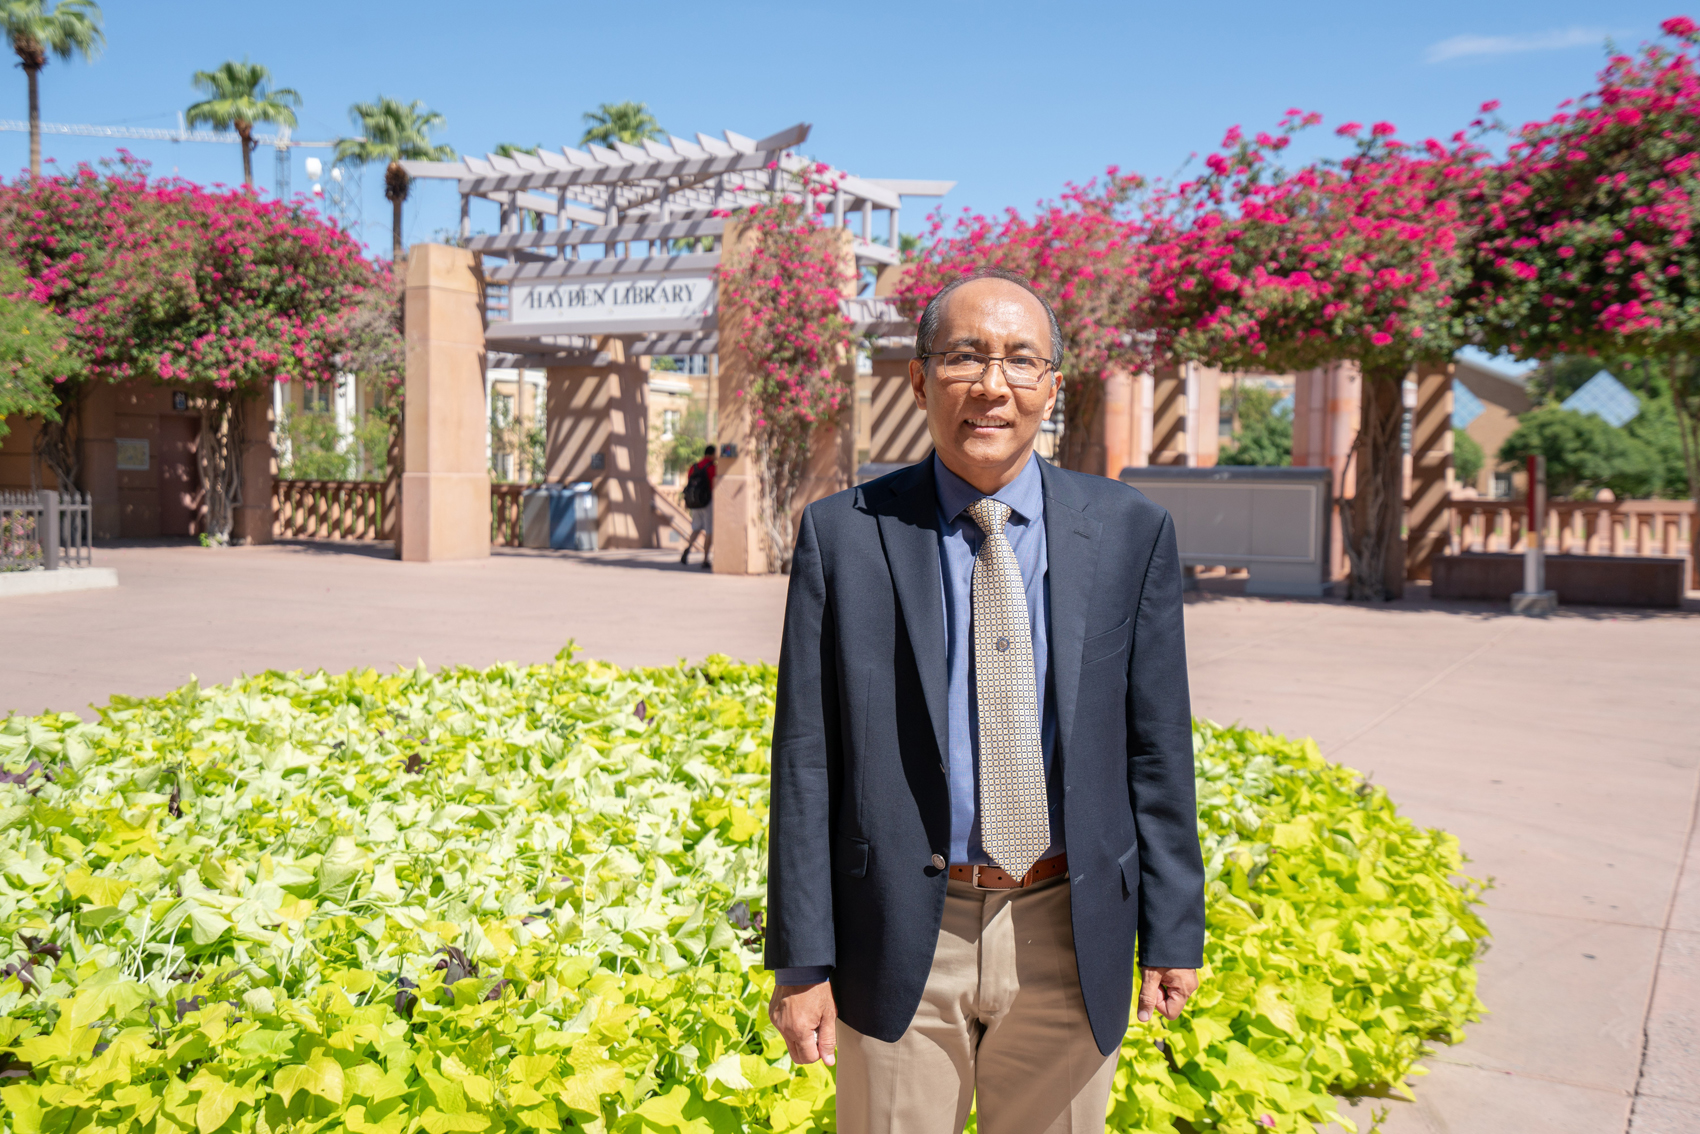 Soe Myint outside on a summer day, surrounded by greenery, andin front of the Arizona State University library.